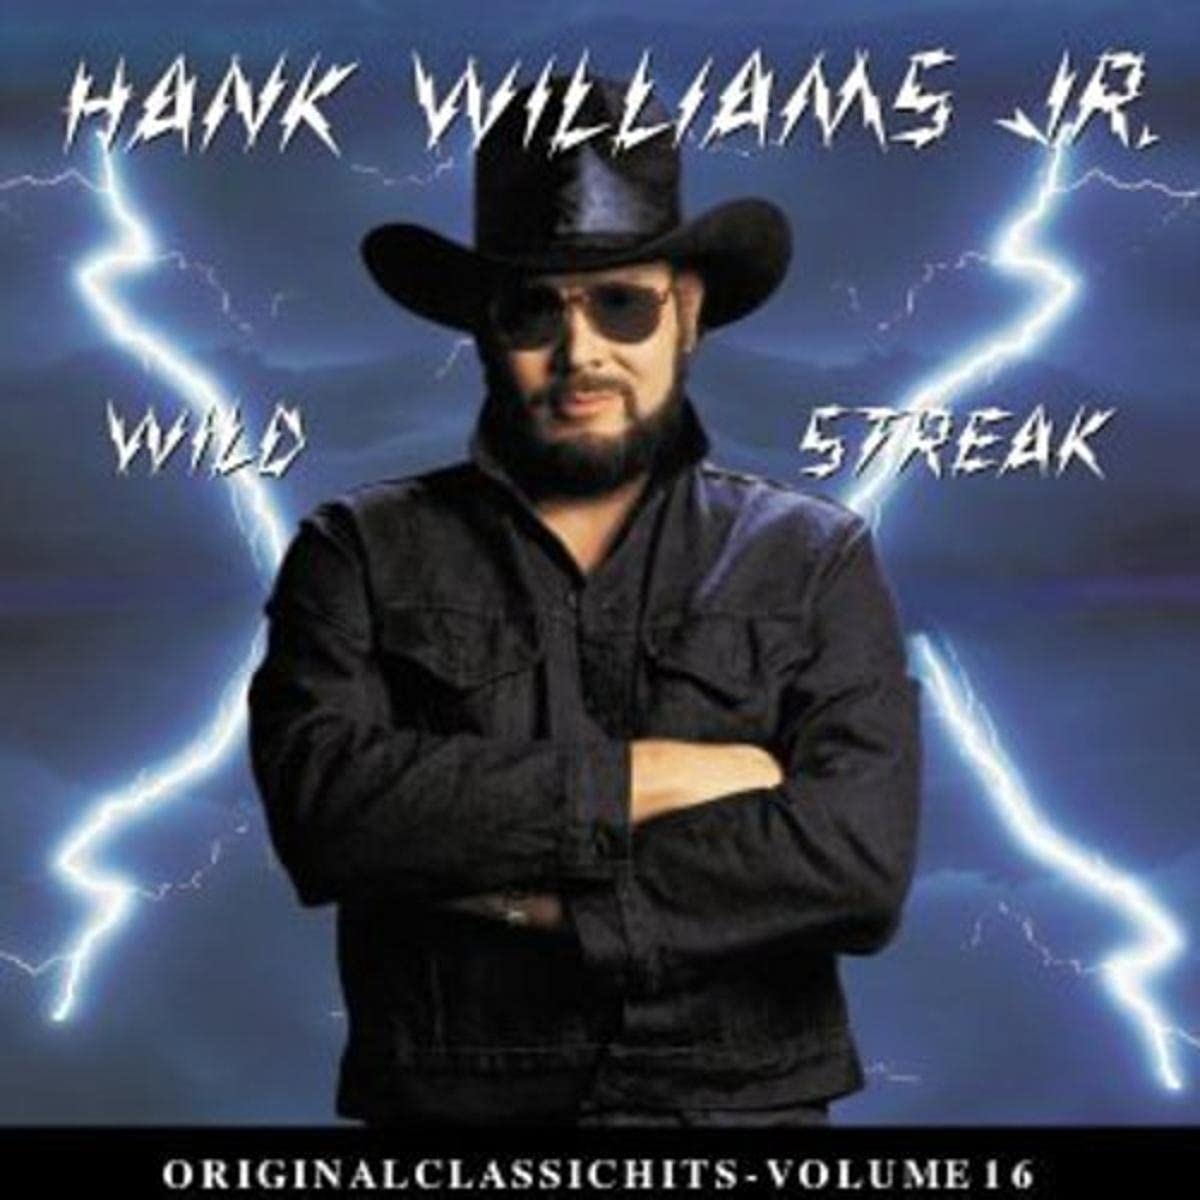 Free shipping anywhere gift in the nation Wild Streak Vol. 16